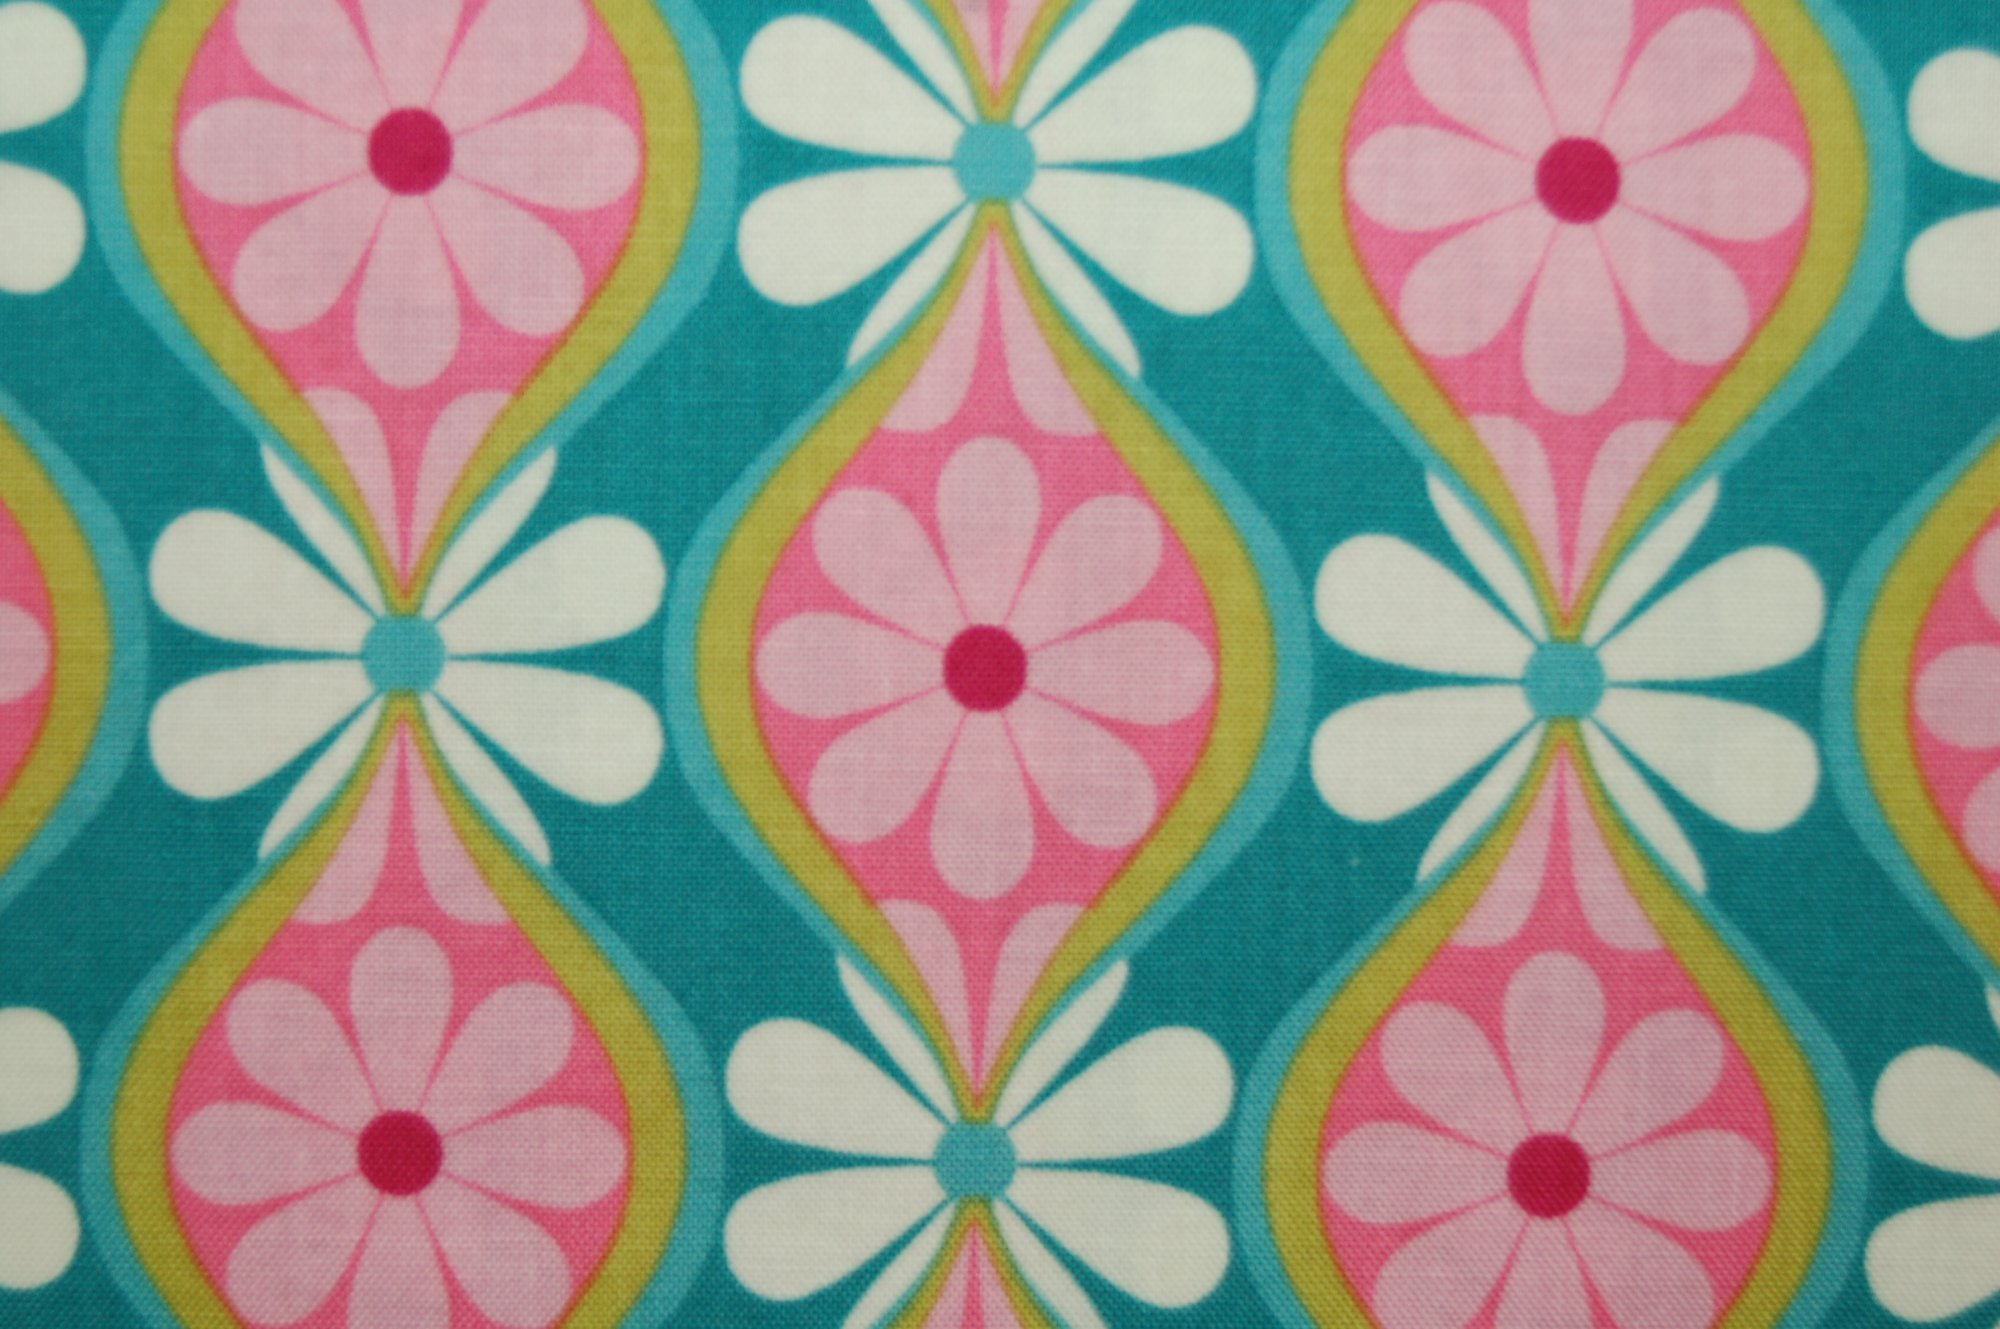 Boutanique - Wavy Motif from Lila Tueller for Riley Blake Designs